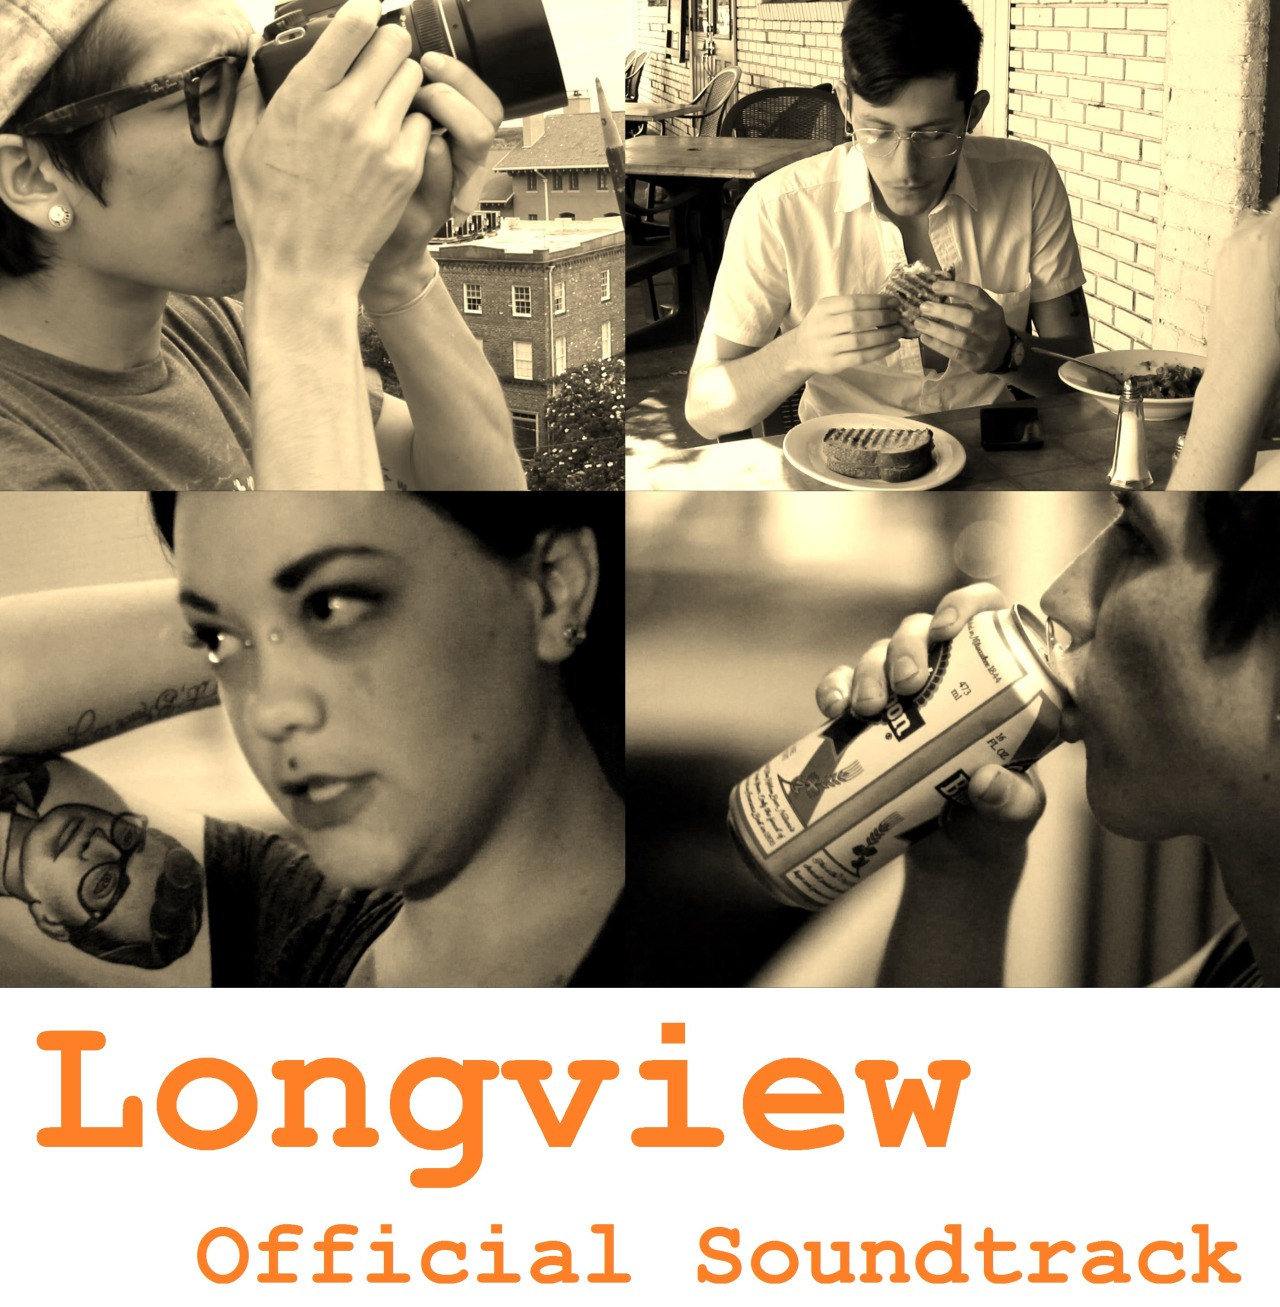 Free sountrack download for my movie Longview !    CLICK HERE FOR FREE ALBUM DOWNLOAD     I released a free soundtrack online compiling the music from the movie. The artists are:    Triathalon   Andrew Jackson Jihad   Big D & the Kid's Table   Make Wave   Chalk Talk   Places to Hide   Ash Victim   Frank Turner   Ghost Mice   Agree to Disagree